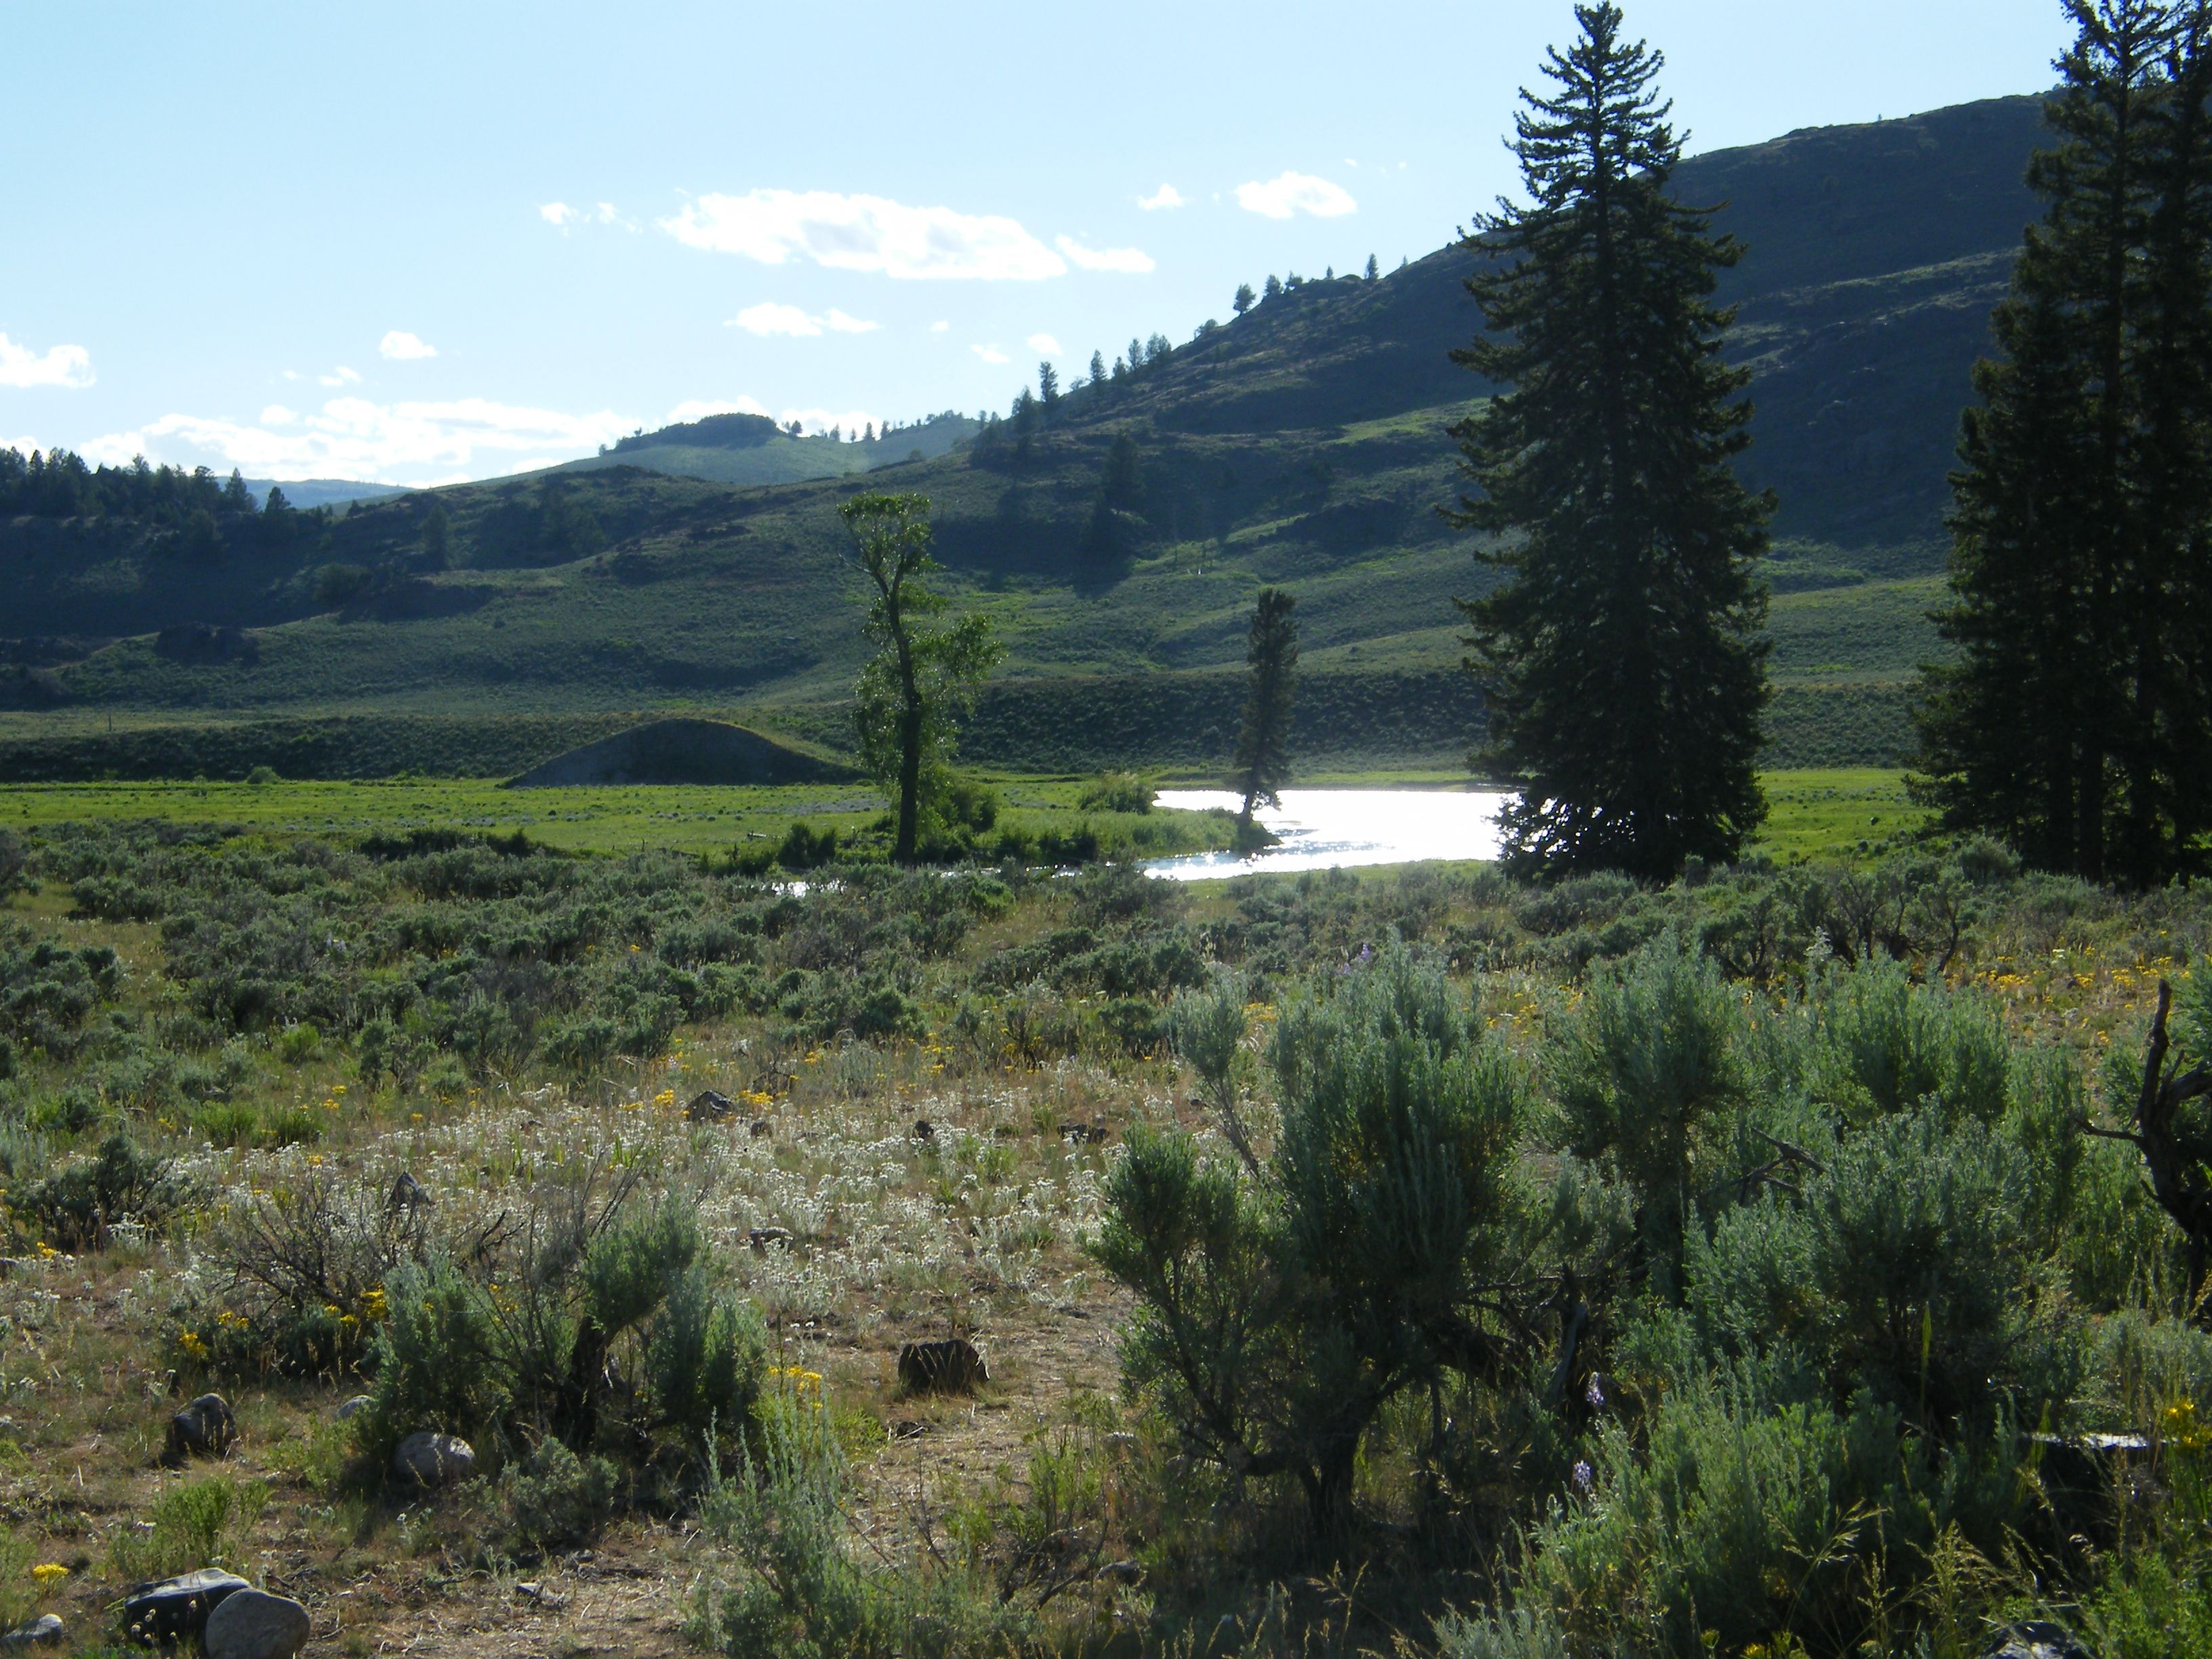 Slough Creek Yellowstone National Park